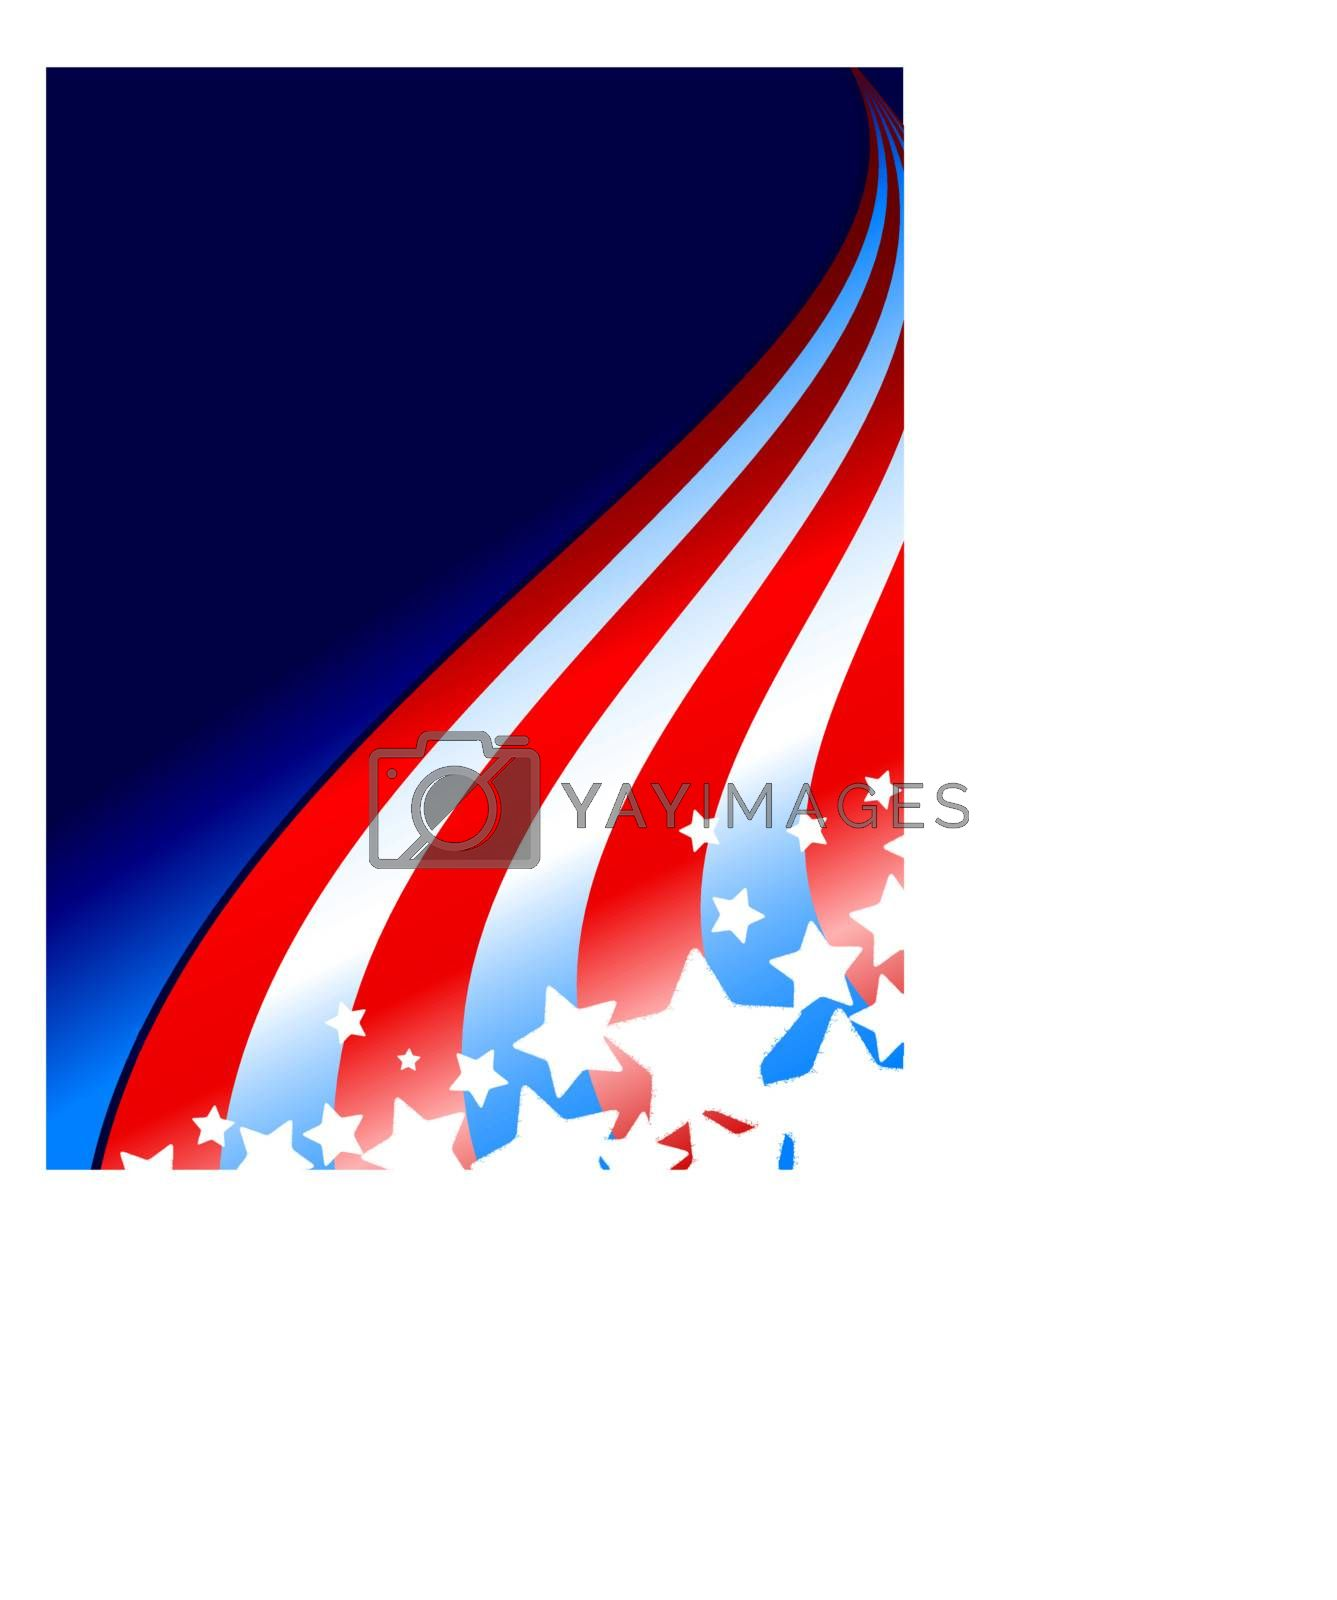 Illustration for the 4th of July, Flag Day or Memorial Day featuring stars and stripes